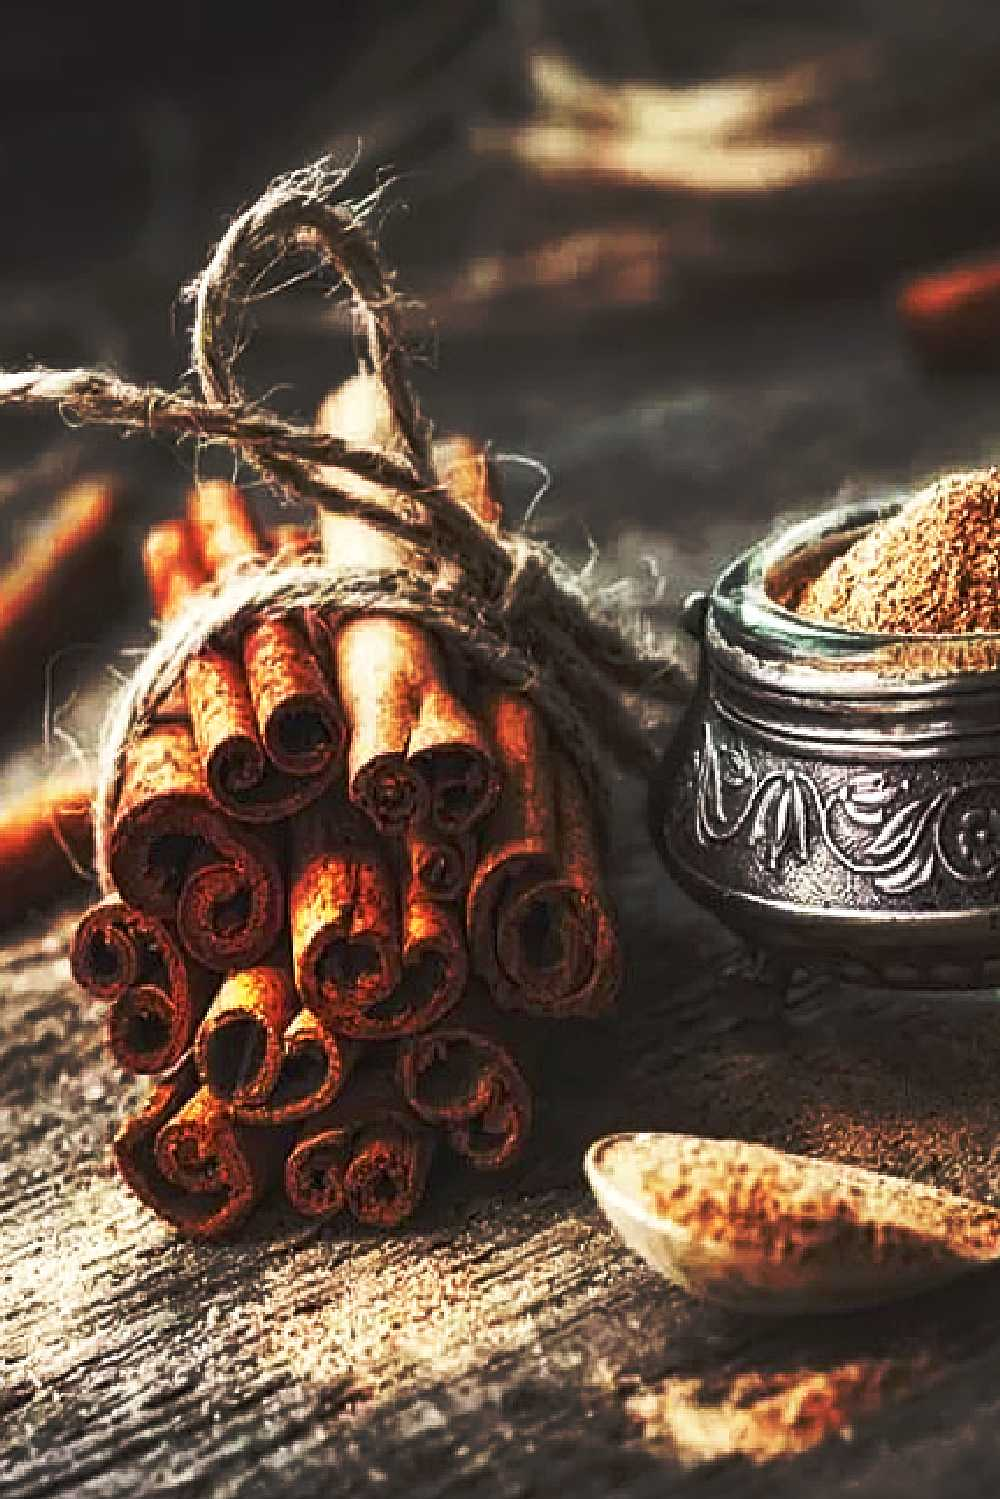 How do you use cinnamon powder for weight loss?